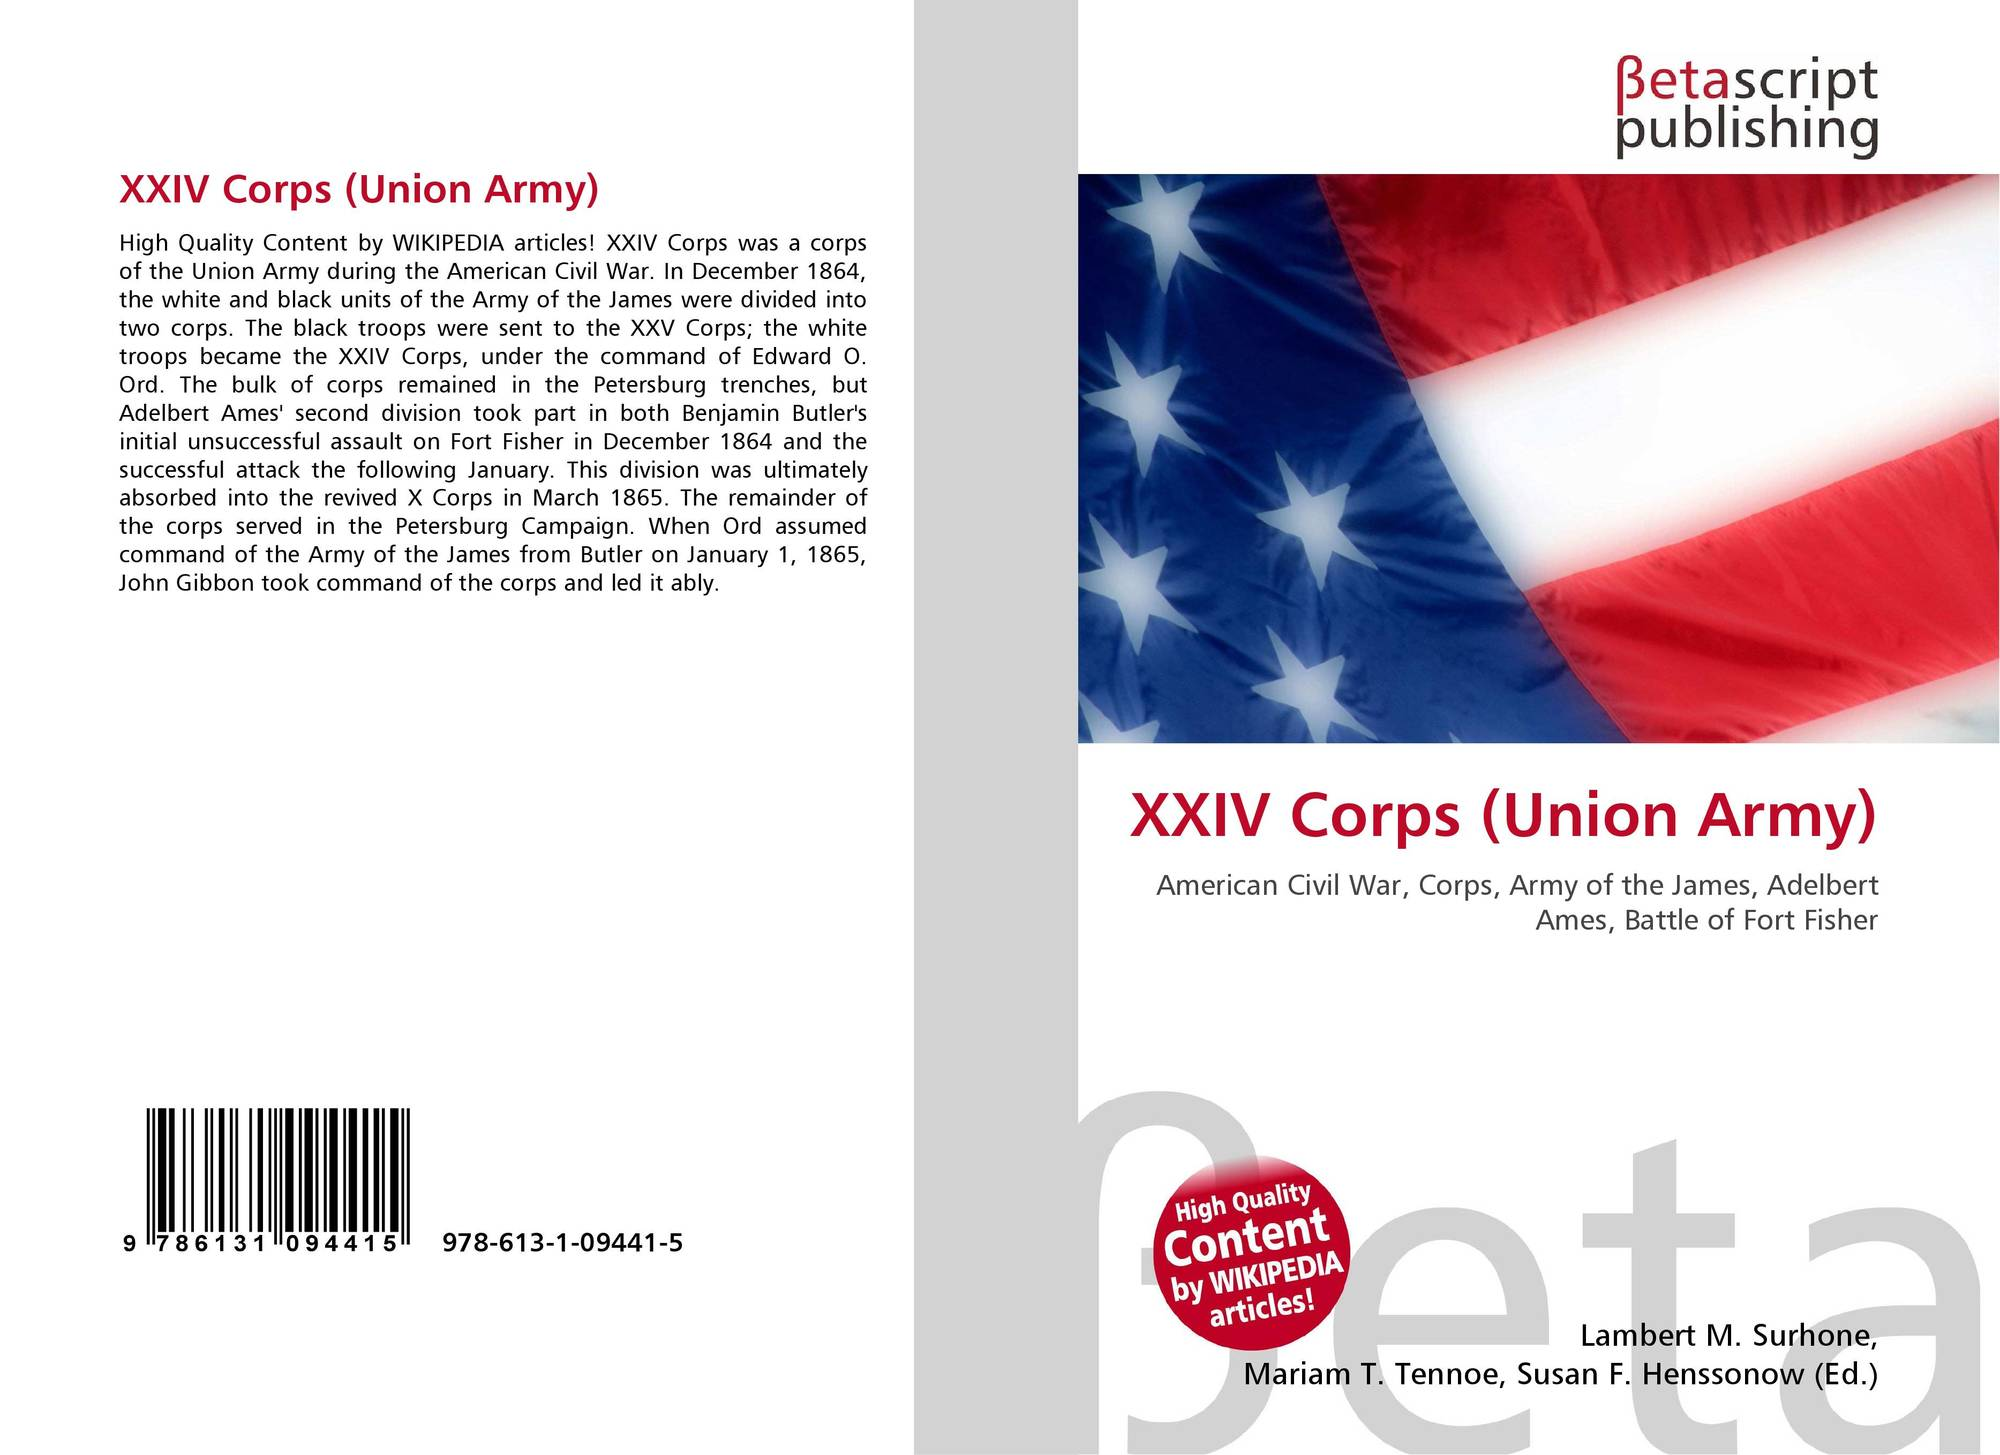 a history of industrial unionism in the united states With respect to nearly anyone who is trying to fight back in our current context, i differ from what most people think about the current state of us unionism of course, none of that can be split away from an analysis of our current circumstances which i believe is an international hot war, and economic war.